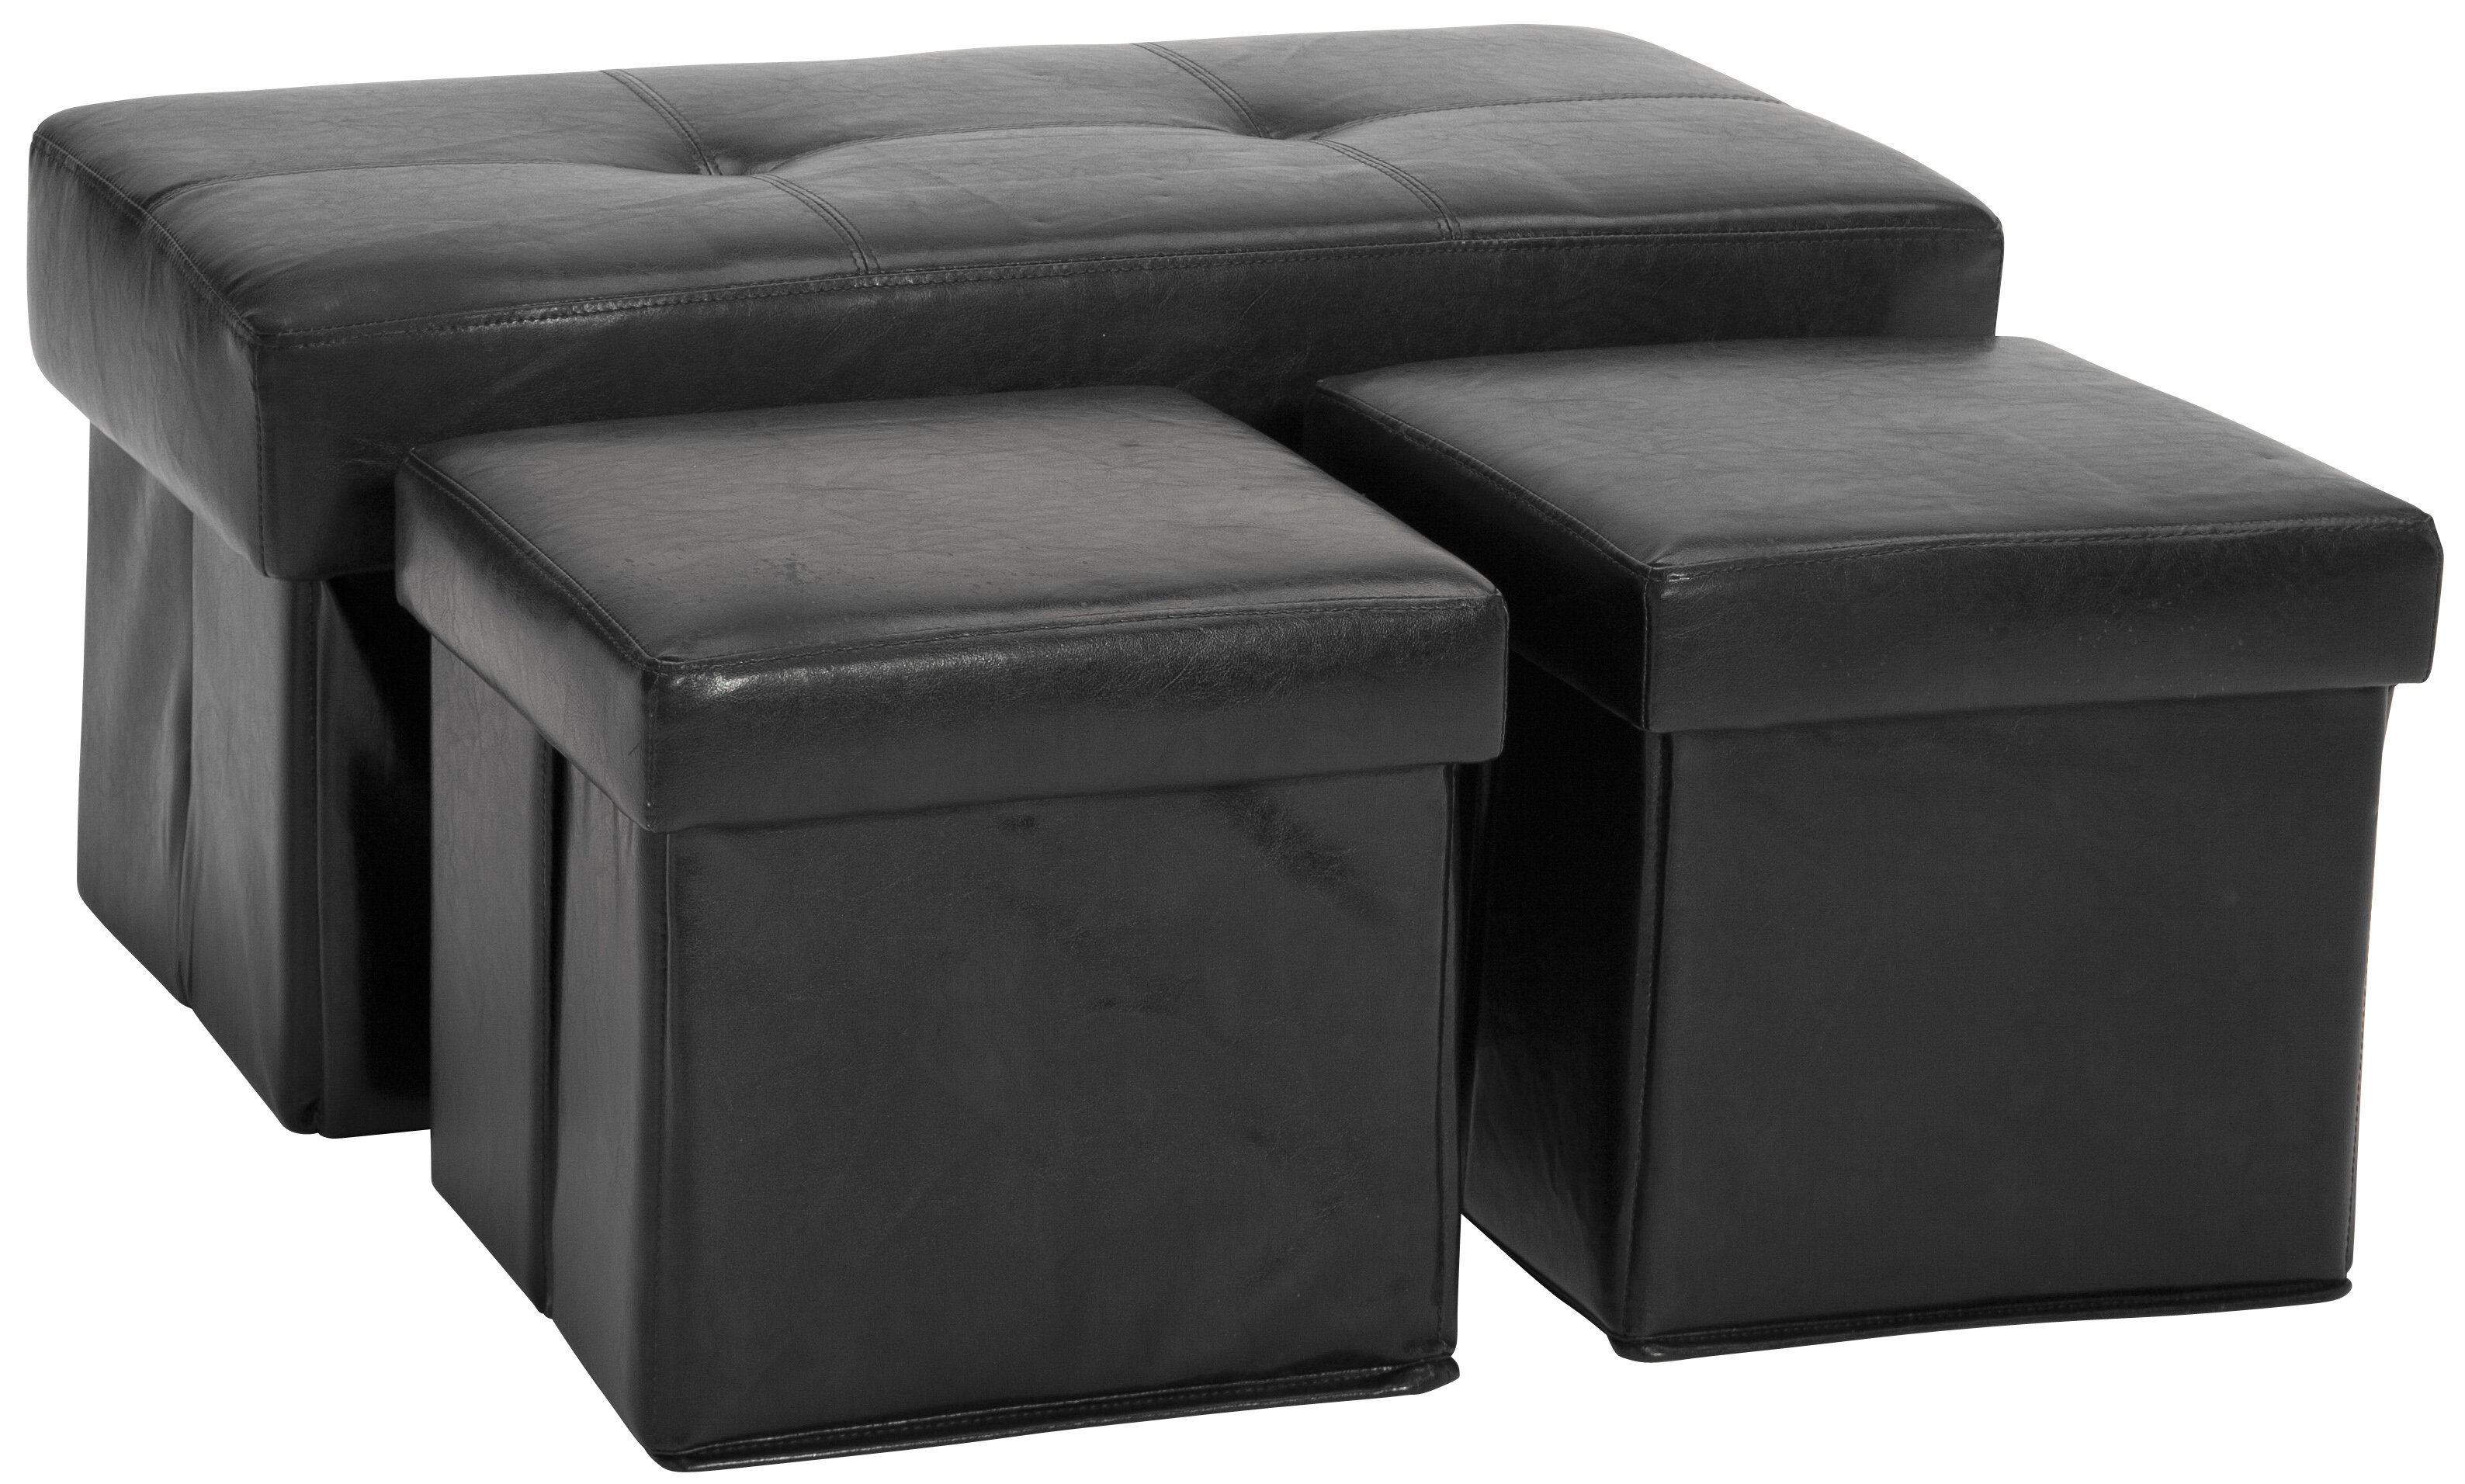 Incredible 3 Piece Storage Ottoman Set Gmtry Best Dining Table And Chair Ideas Images Gmtryco